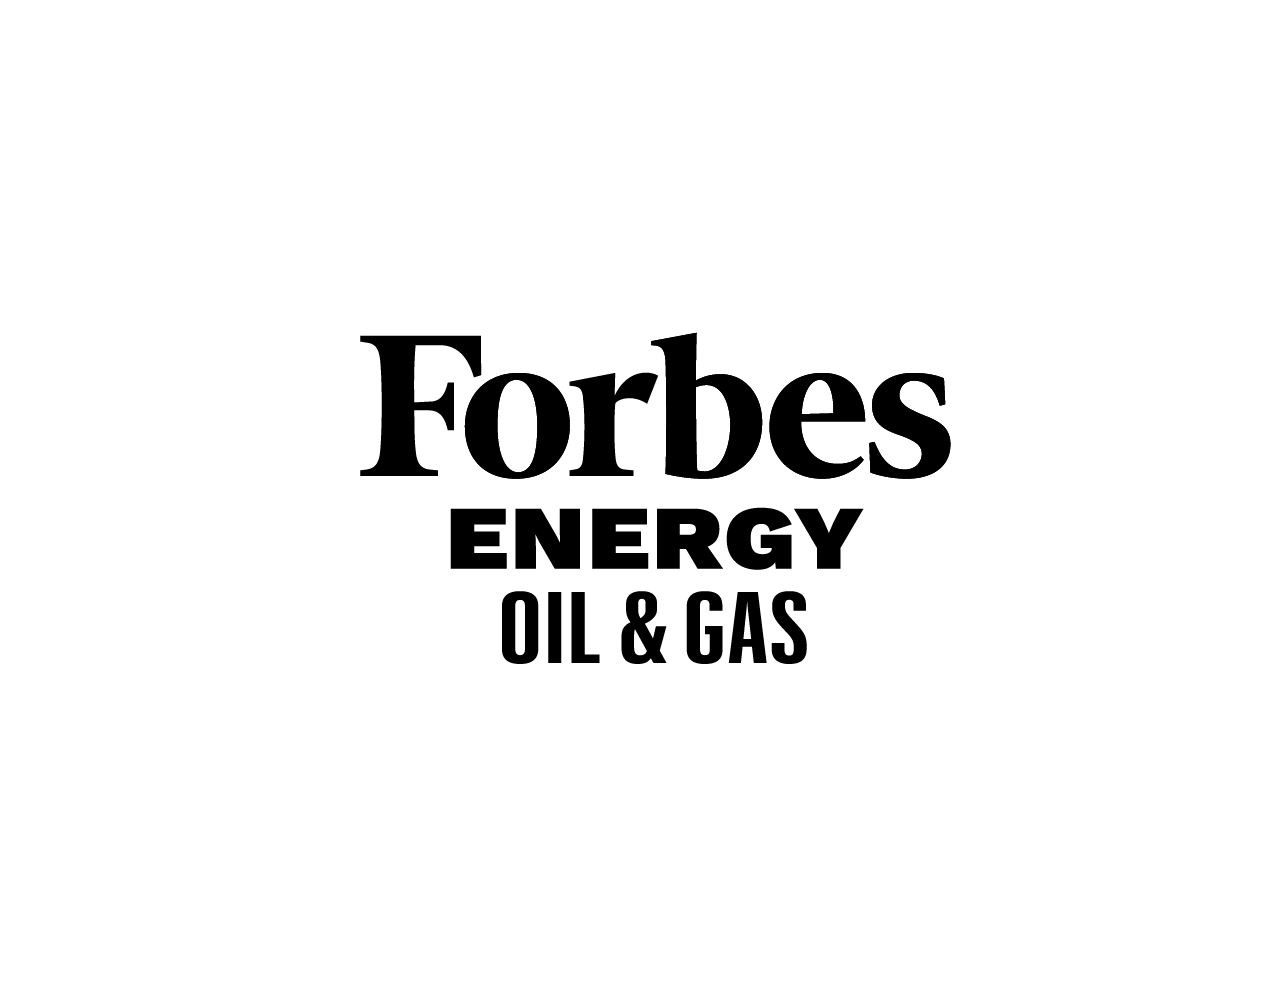 ENERGY, OIL & GAS